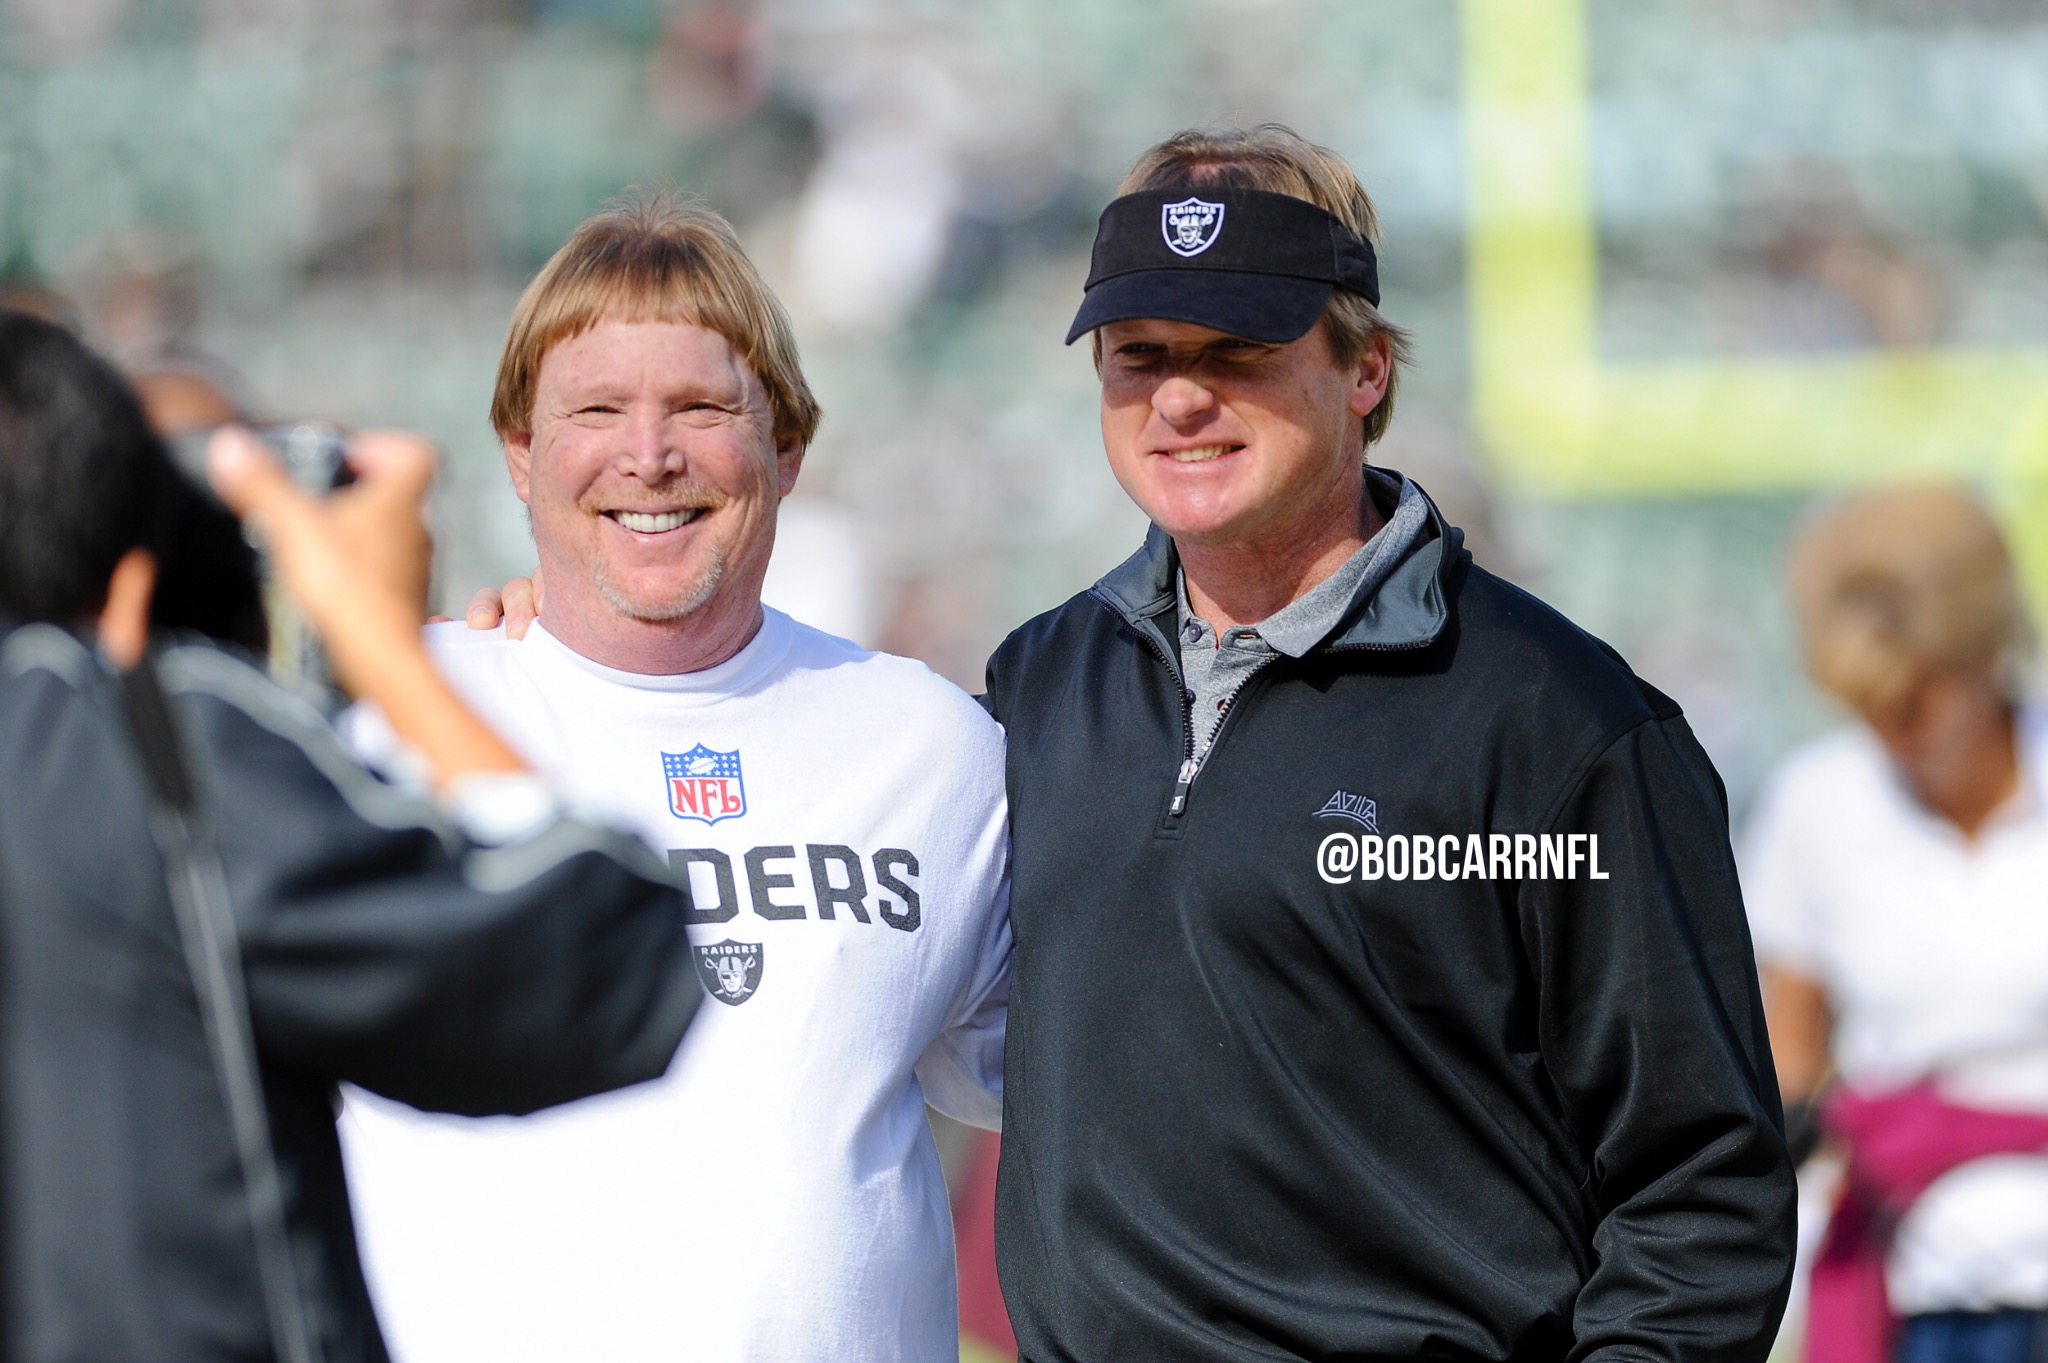 Raiders looking to add to front office